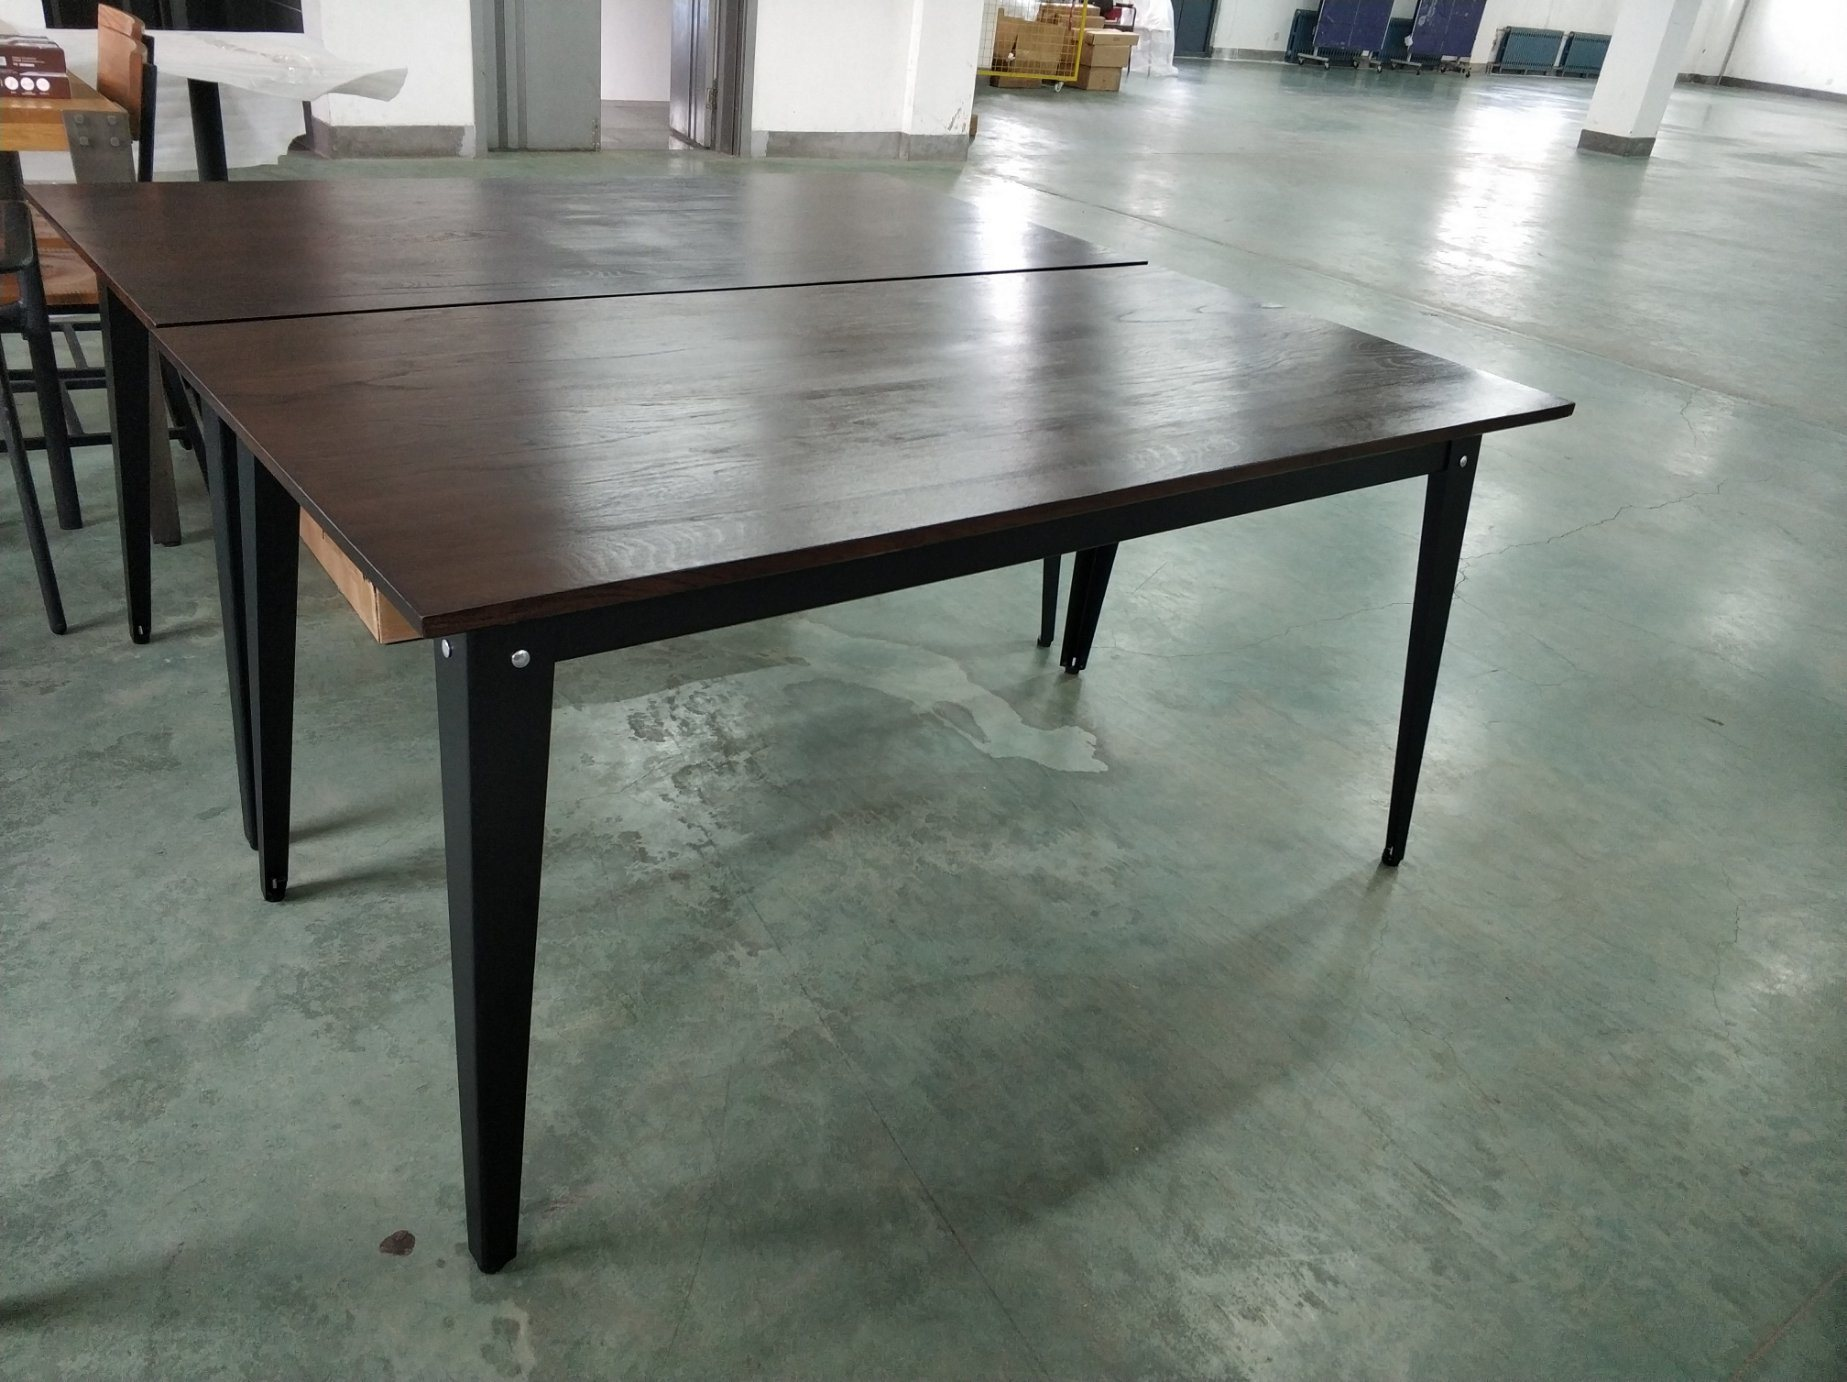 China New Design Restaurant Furniture Dining Table Metal Table Frame For 4 Person China Metal Table Frame Cast Iron Table Leg